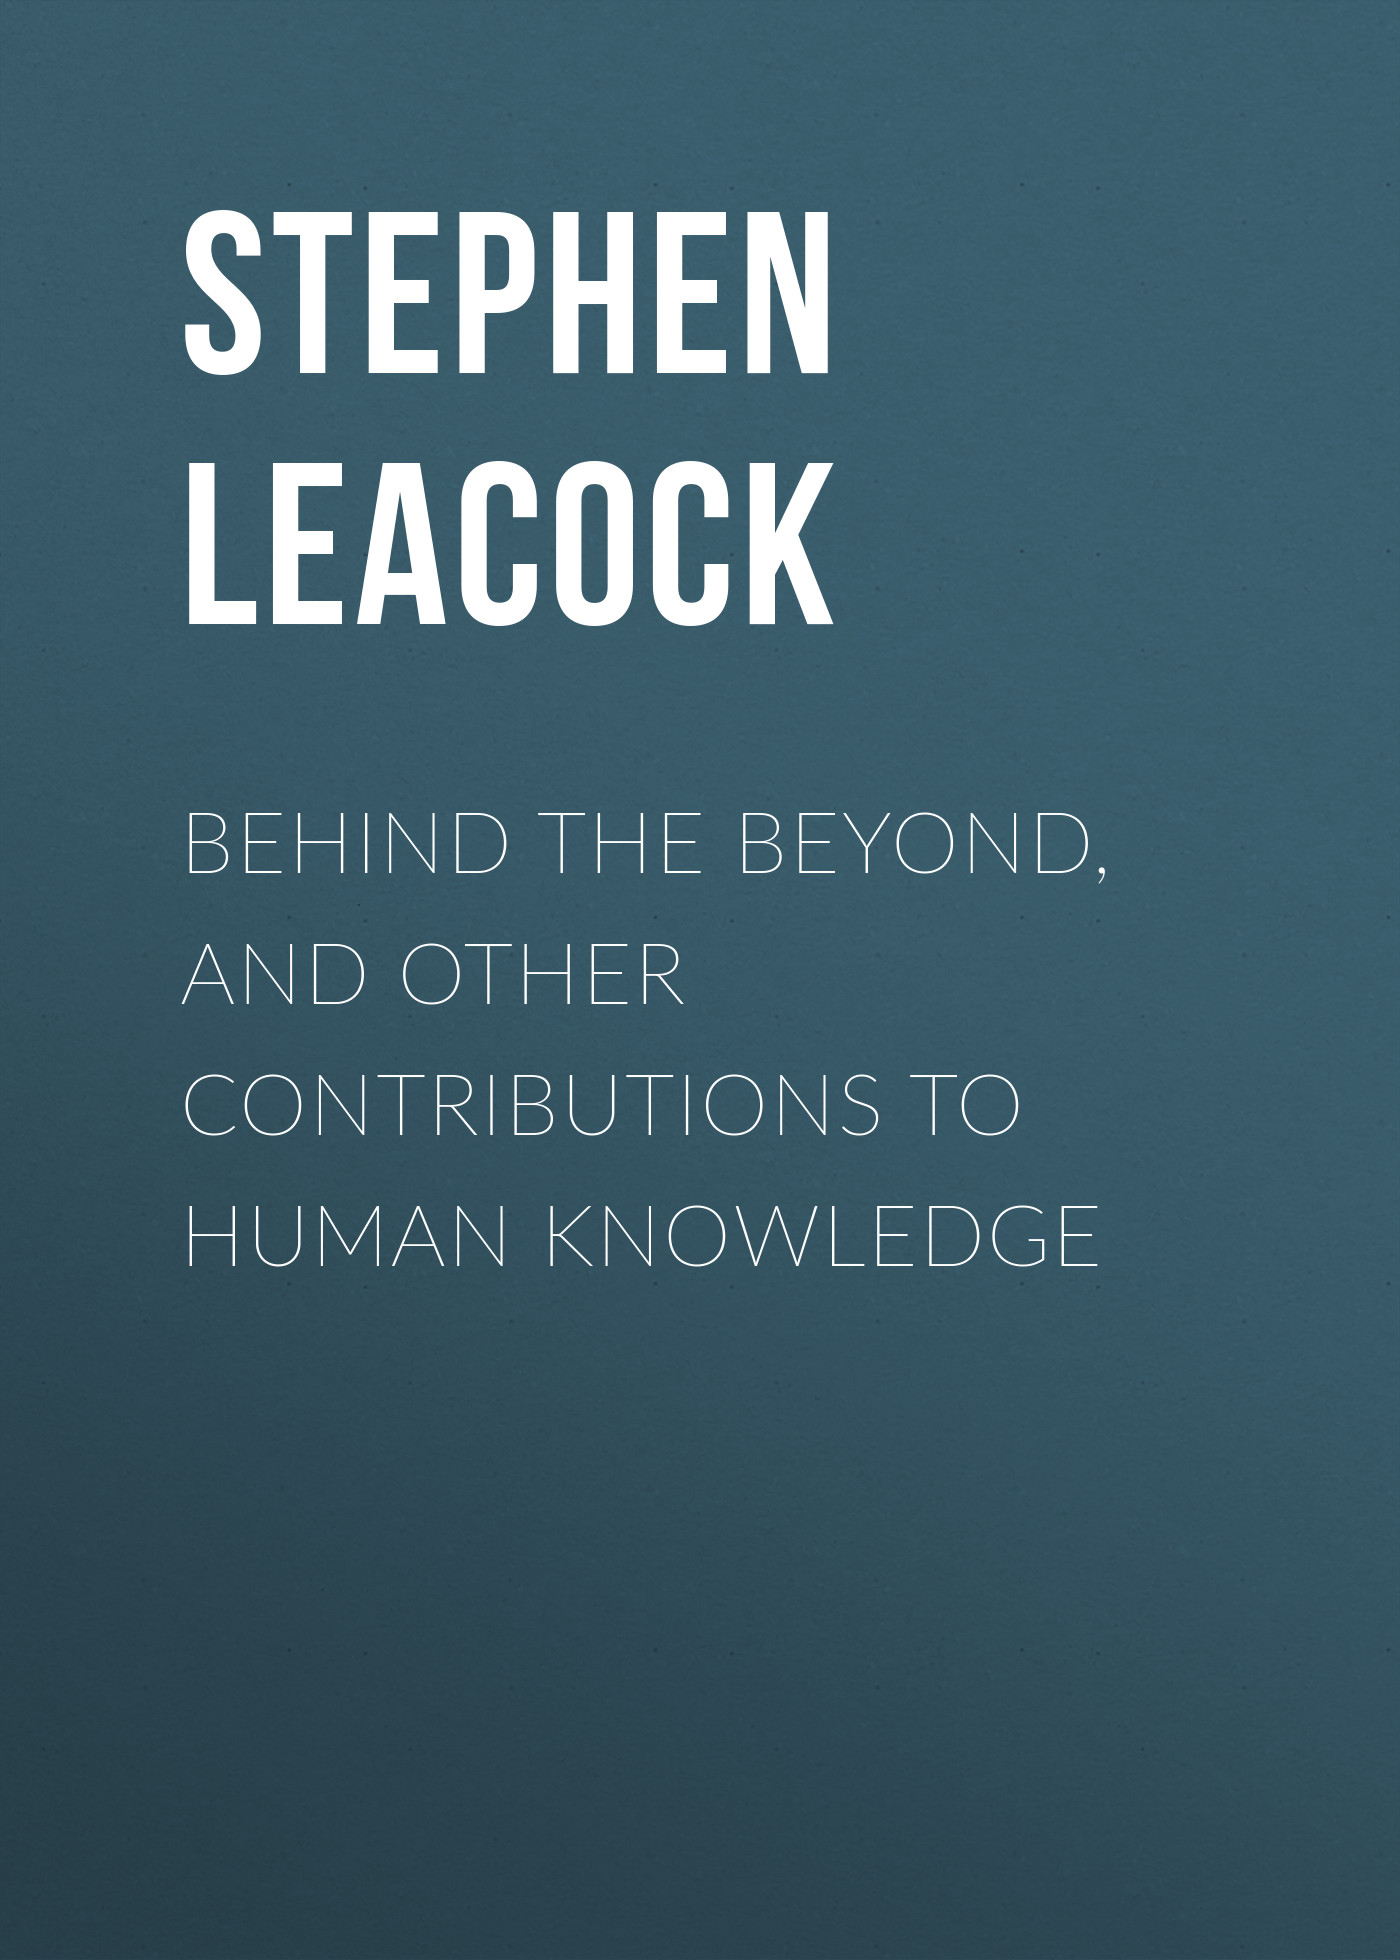 Stephen Leacock Behind the Beyond, and Other Contributions to Human Knowledge